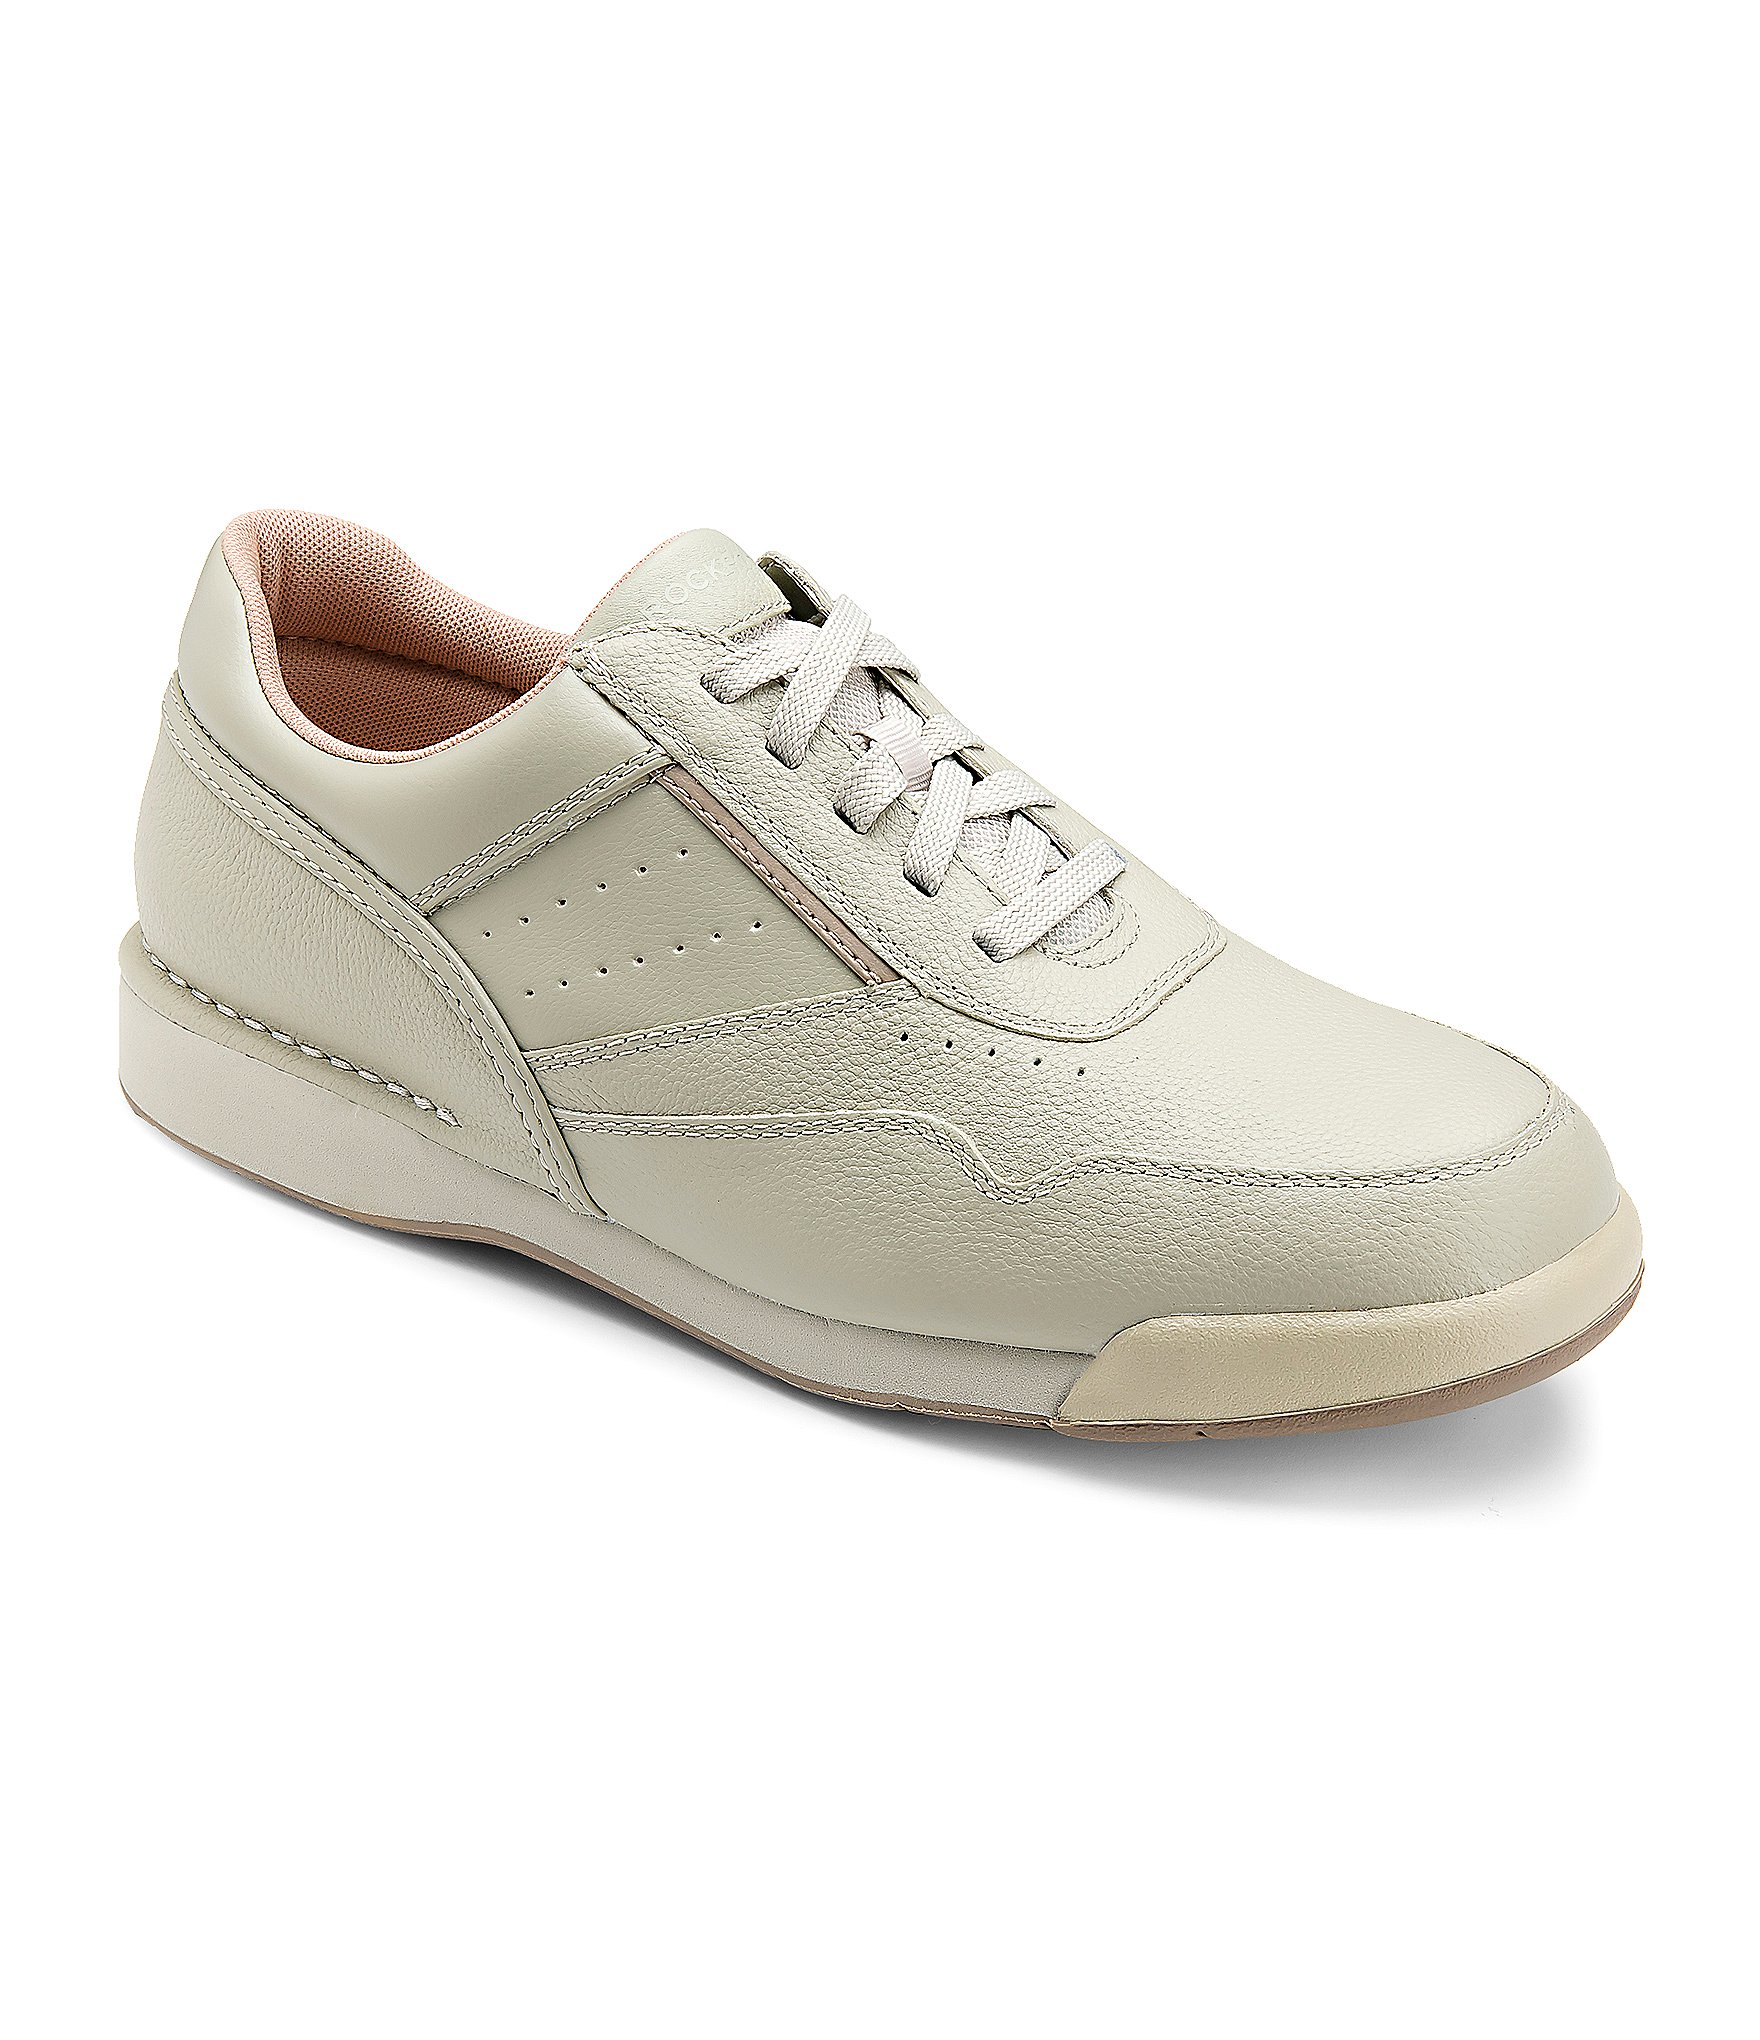 rockport prowalker leather walking shoes in gray for